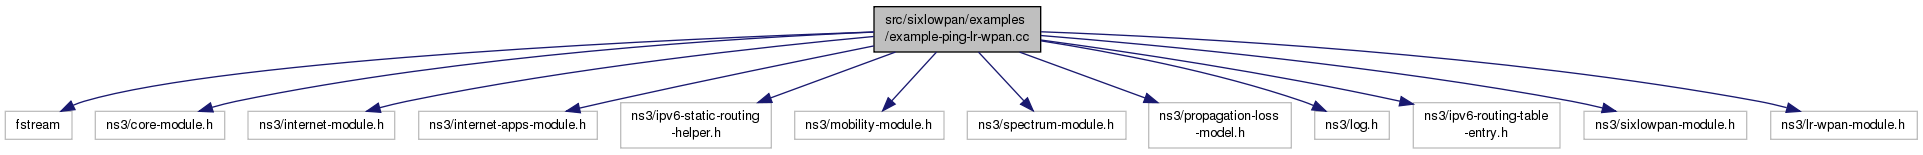 ns-3: src/sixlowpan/examples/example-ping-lr-wpan cc File Reference